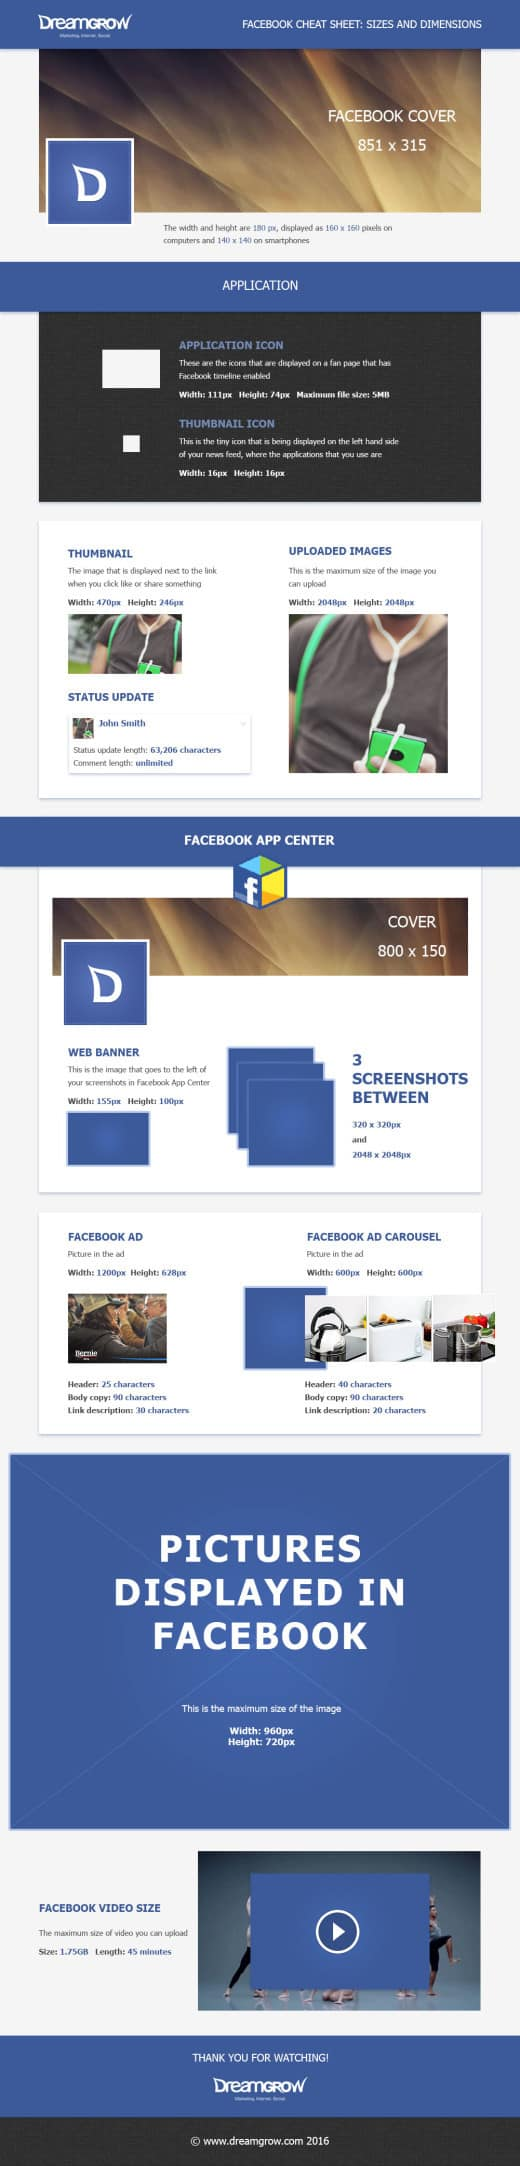 Facebook-Cheat-Sheet-2016